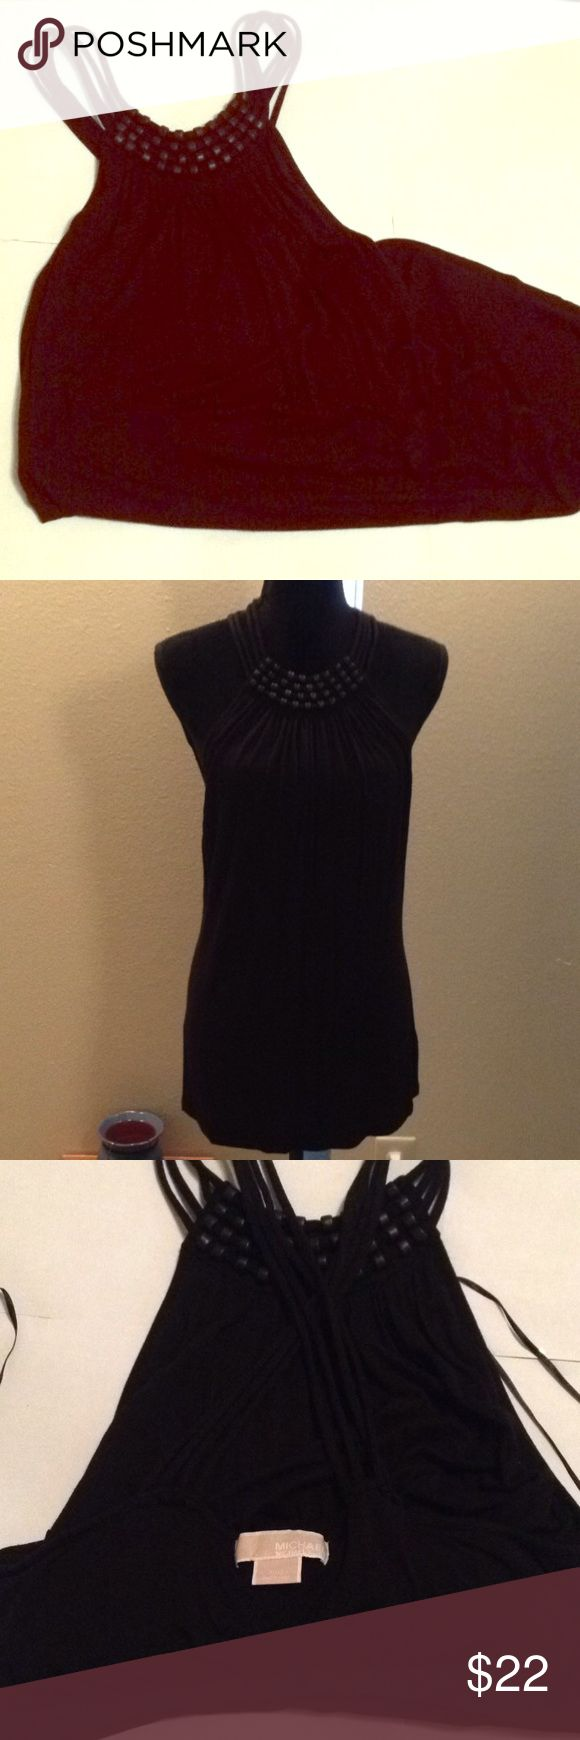 🆑 MK criss-cross top Beaded top with a built in bra top in great condition MICHAEL Michael Kors Tops Blouses